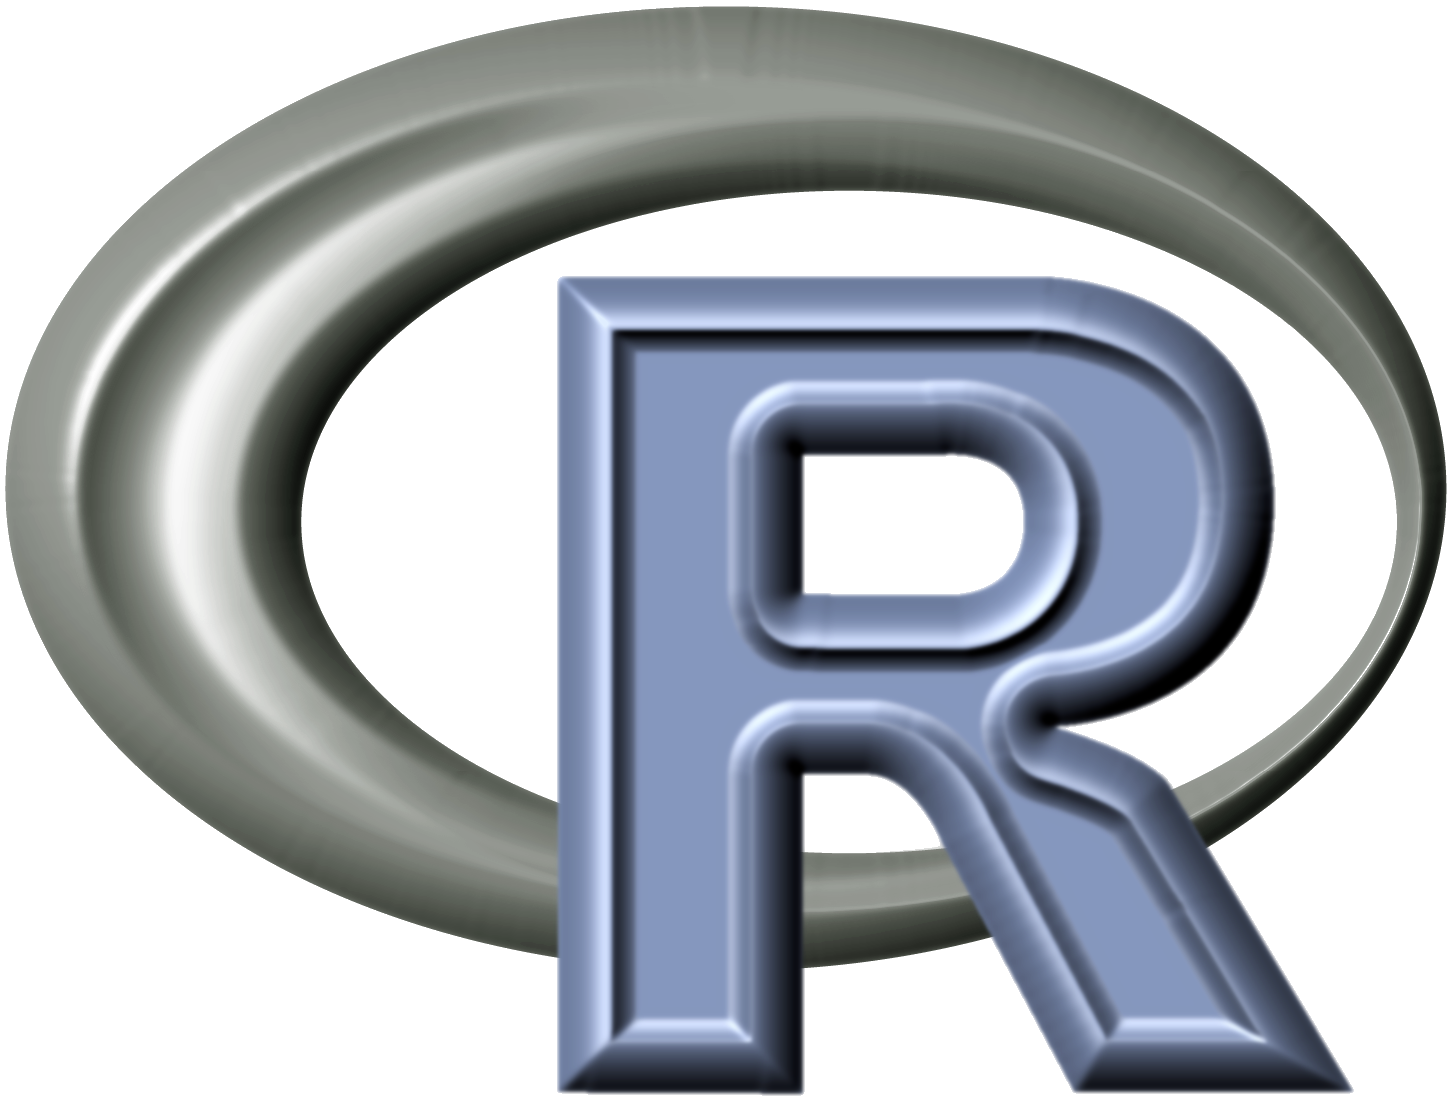 R language for statistical computing